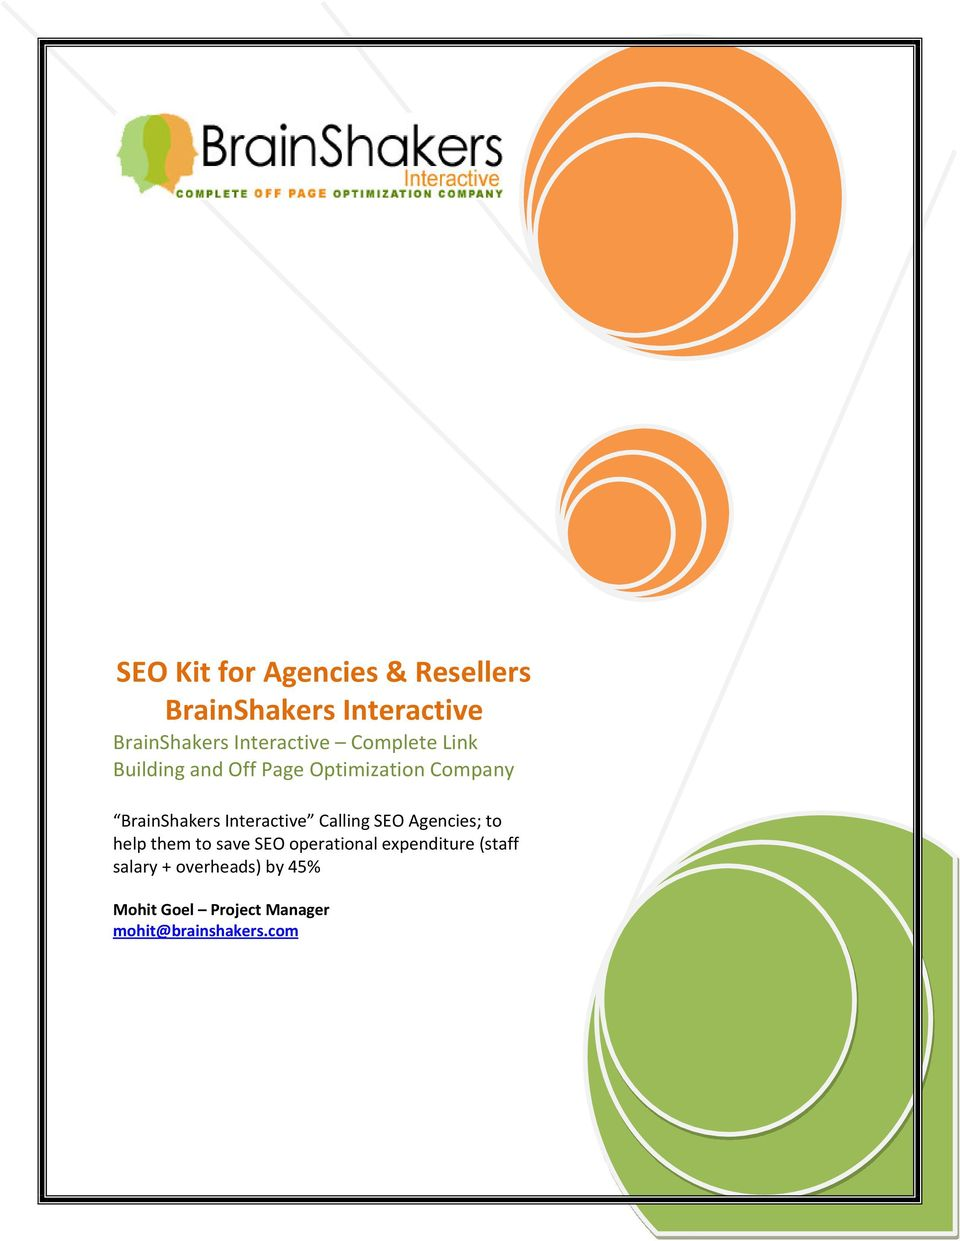 BrainShakers Interactive Calling SEO Agencies; to help them to save SEO